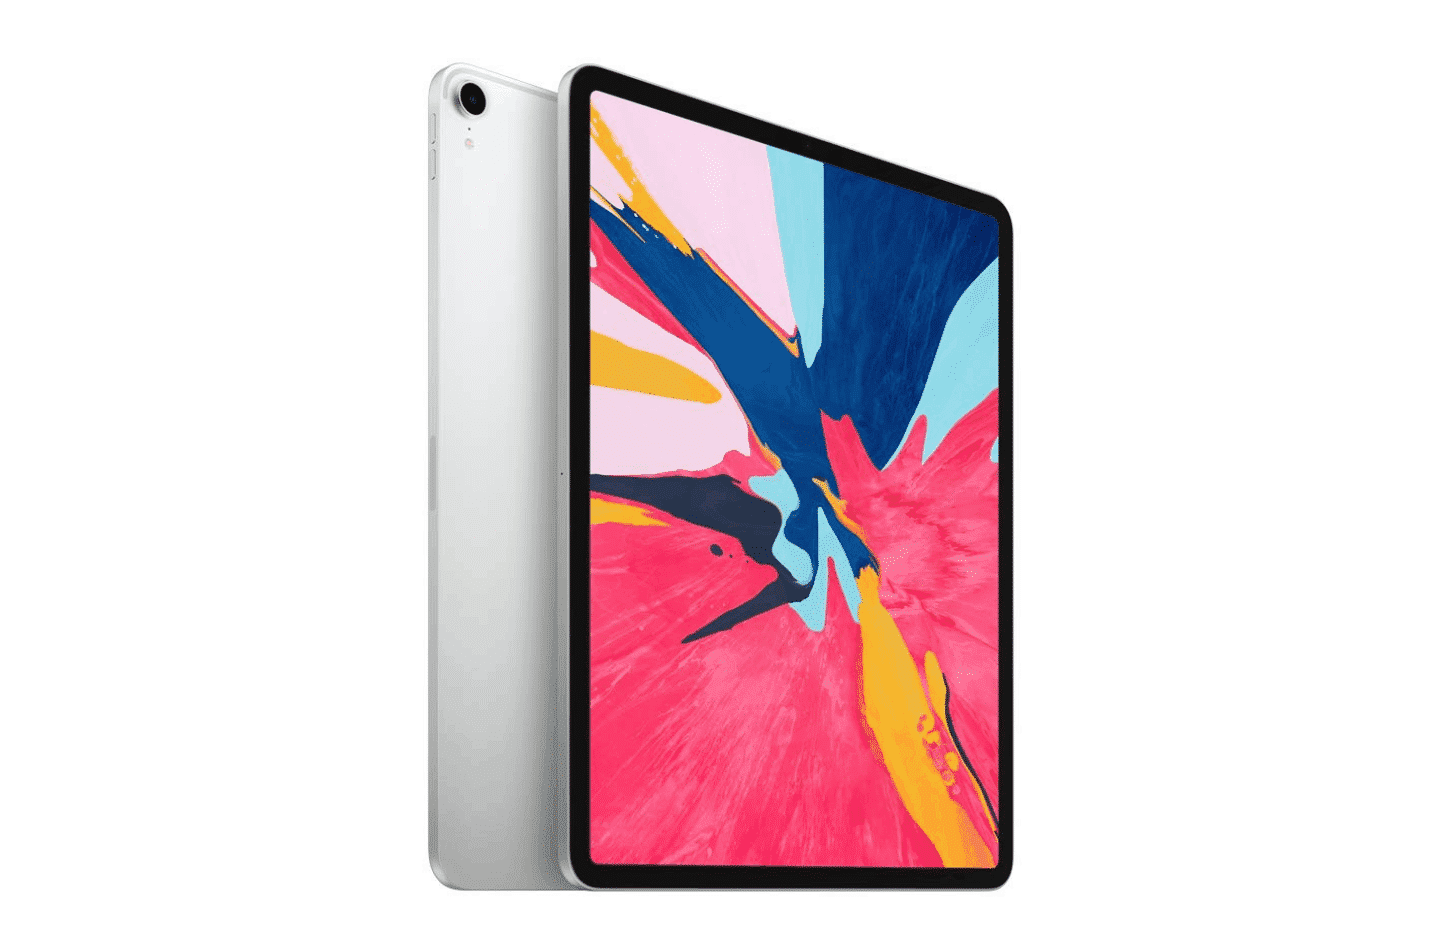 Apple could release new iPads very soon